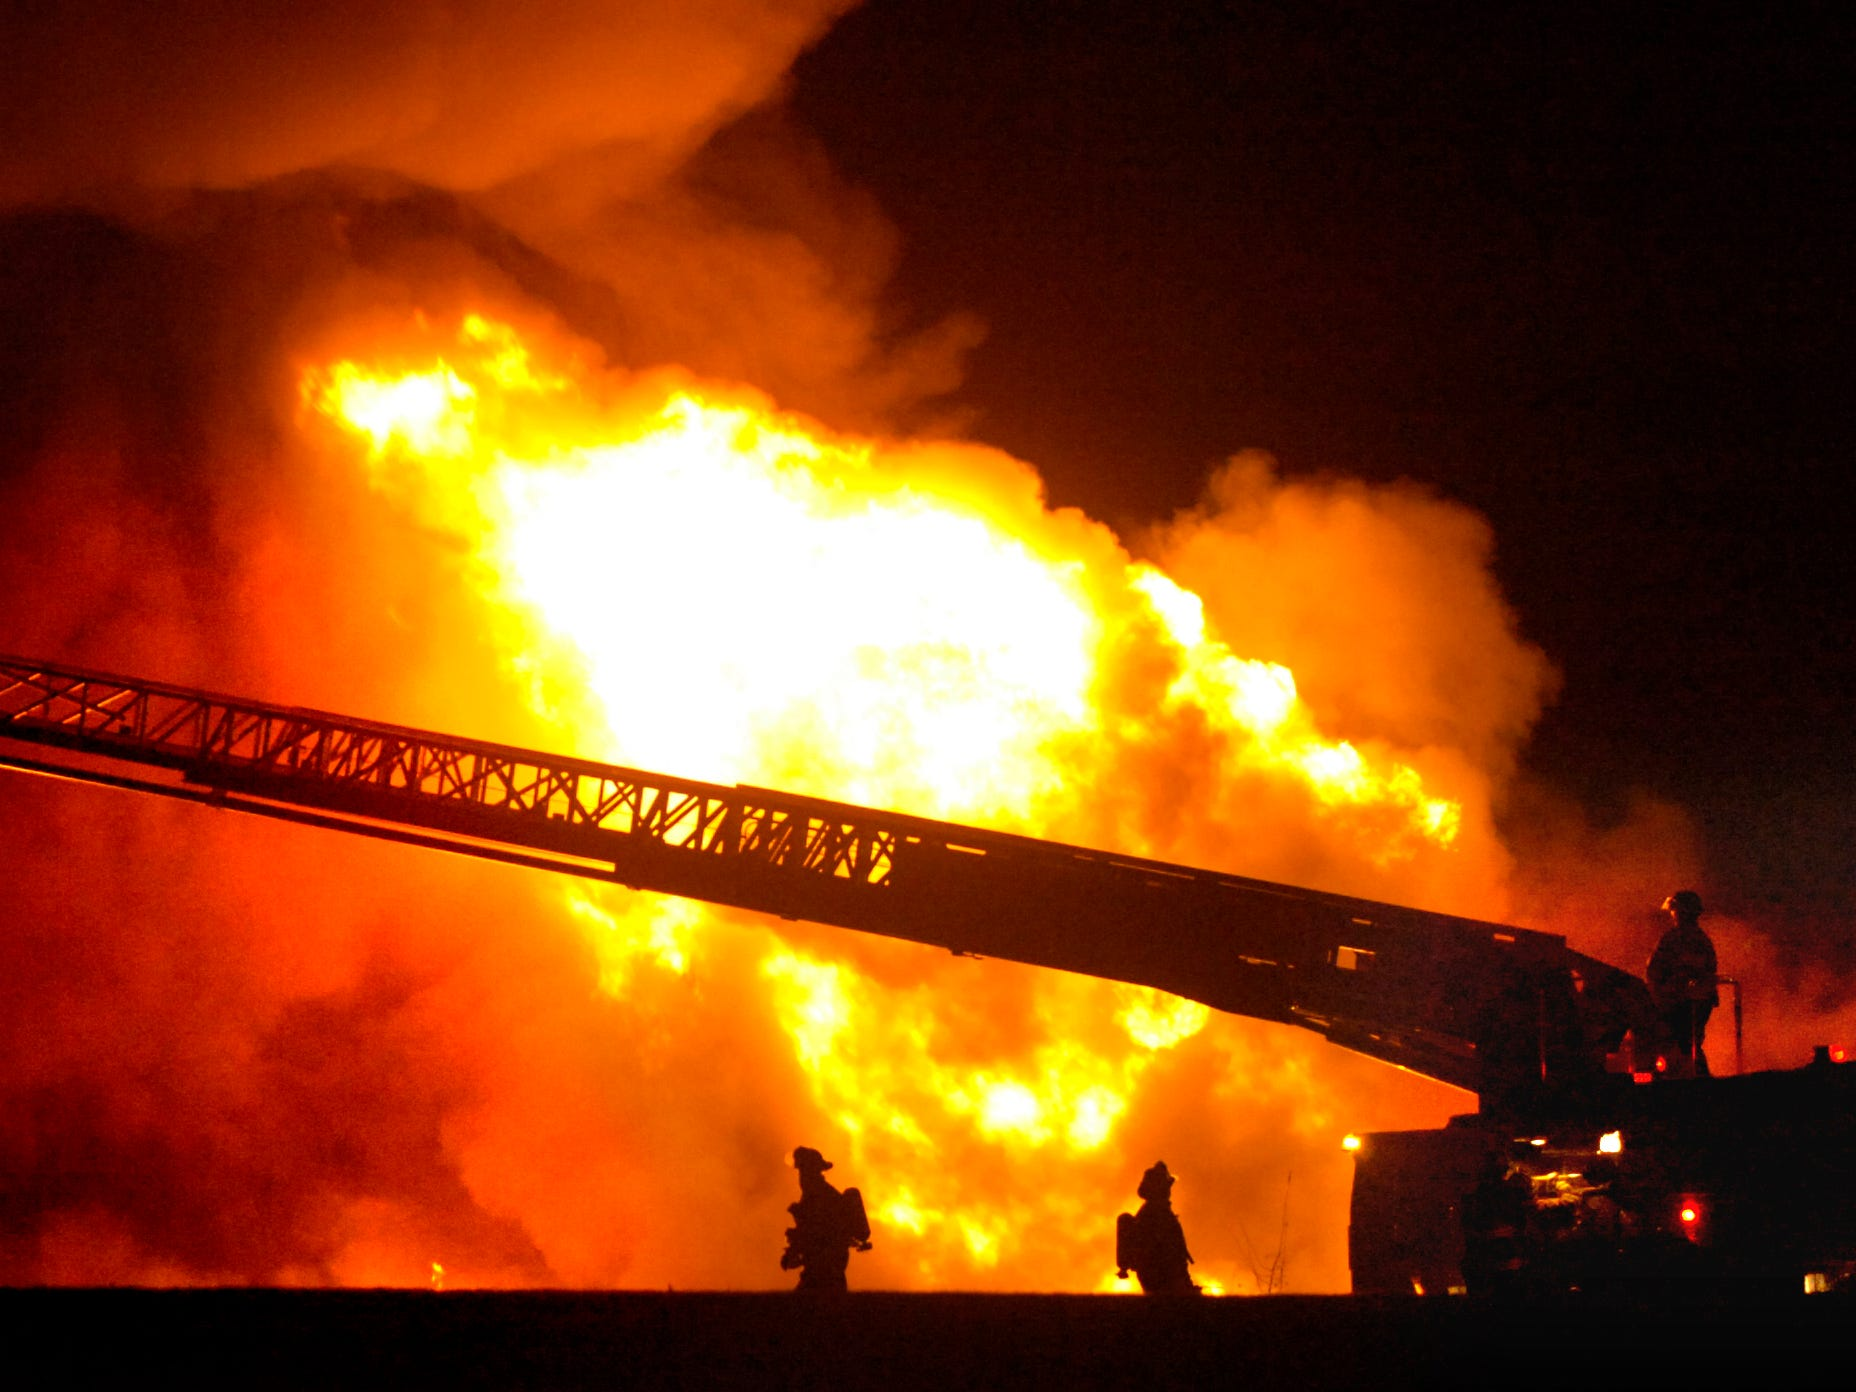 A ladder truck works on the Adhesives Research fire January 10, 2006.